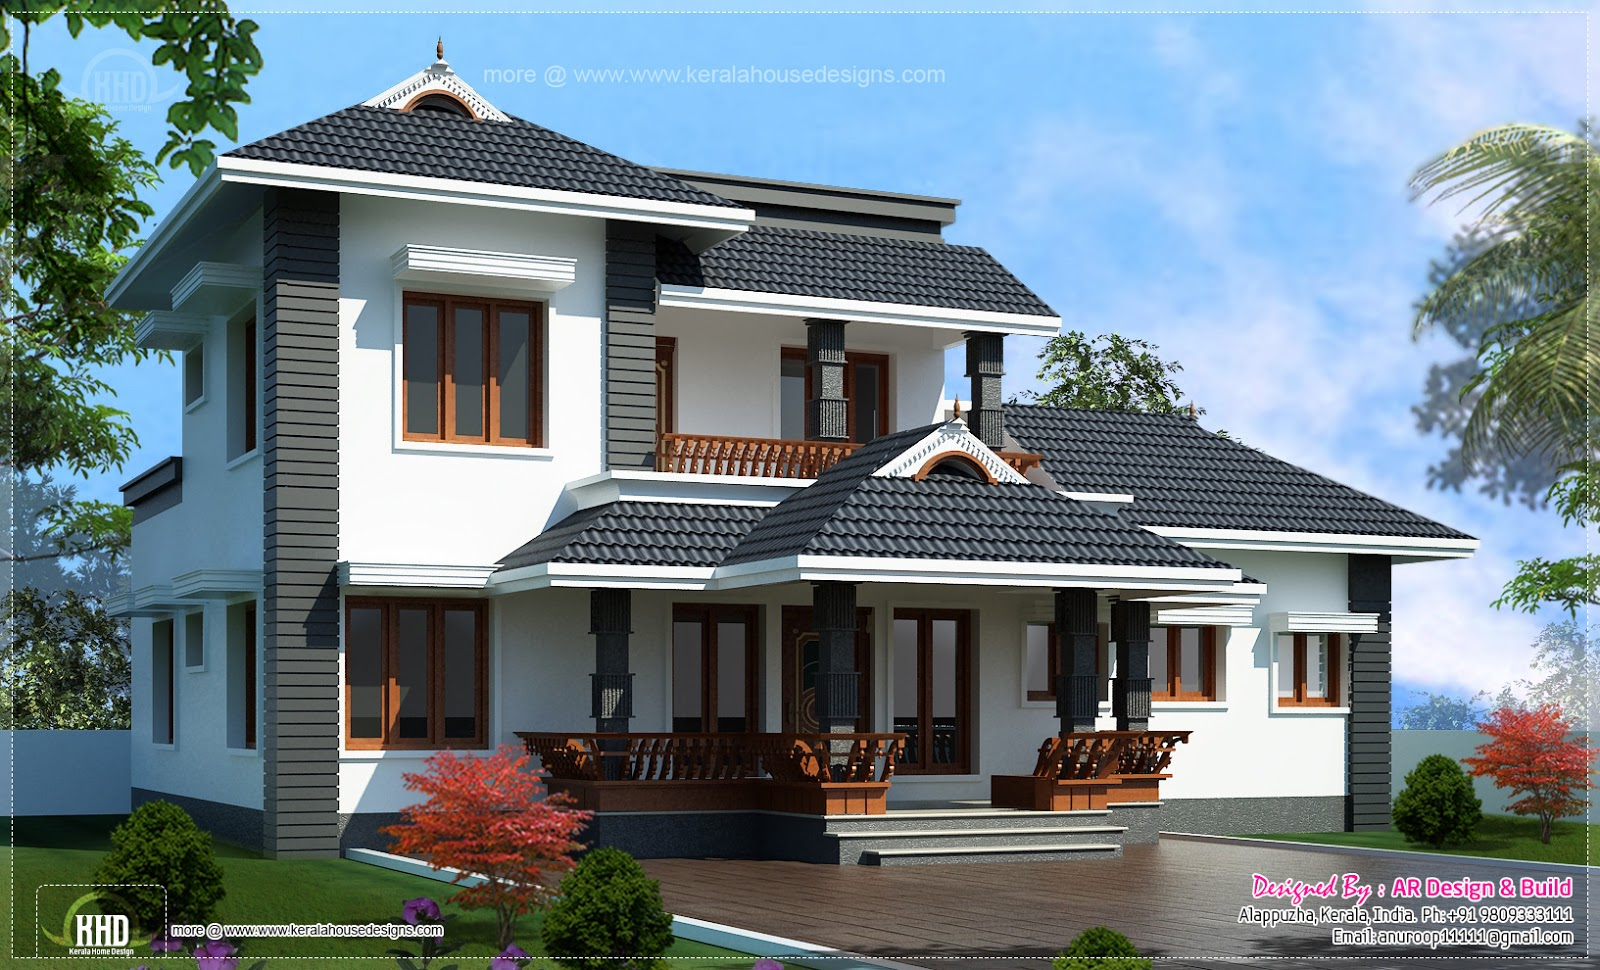 2000 4 bedroom sloping roof residence kerala for 4 bedroom house plans kerala style architect